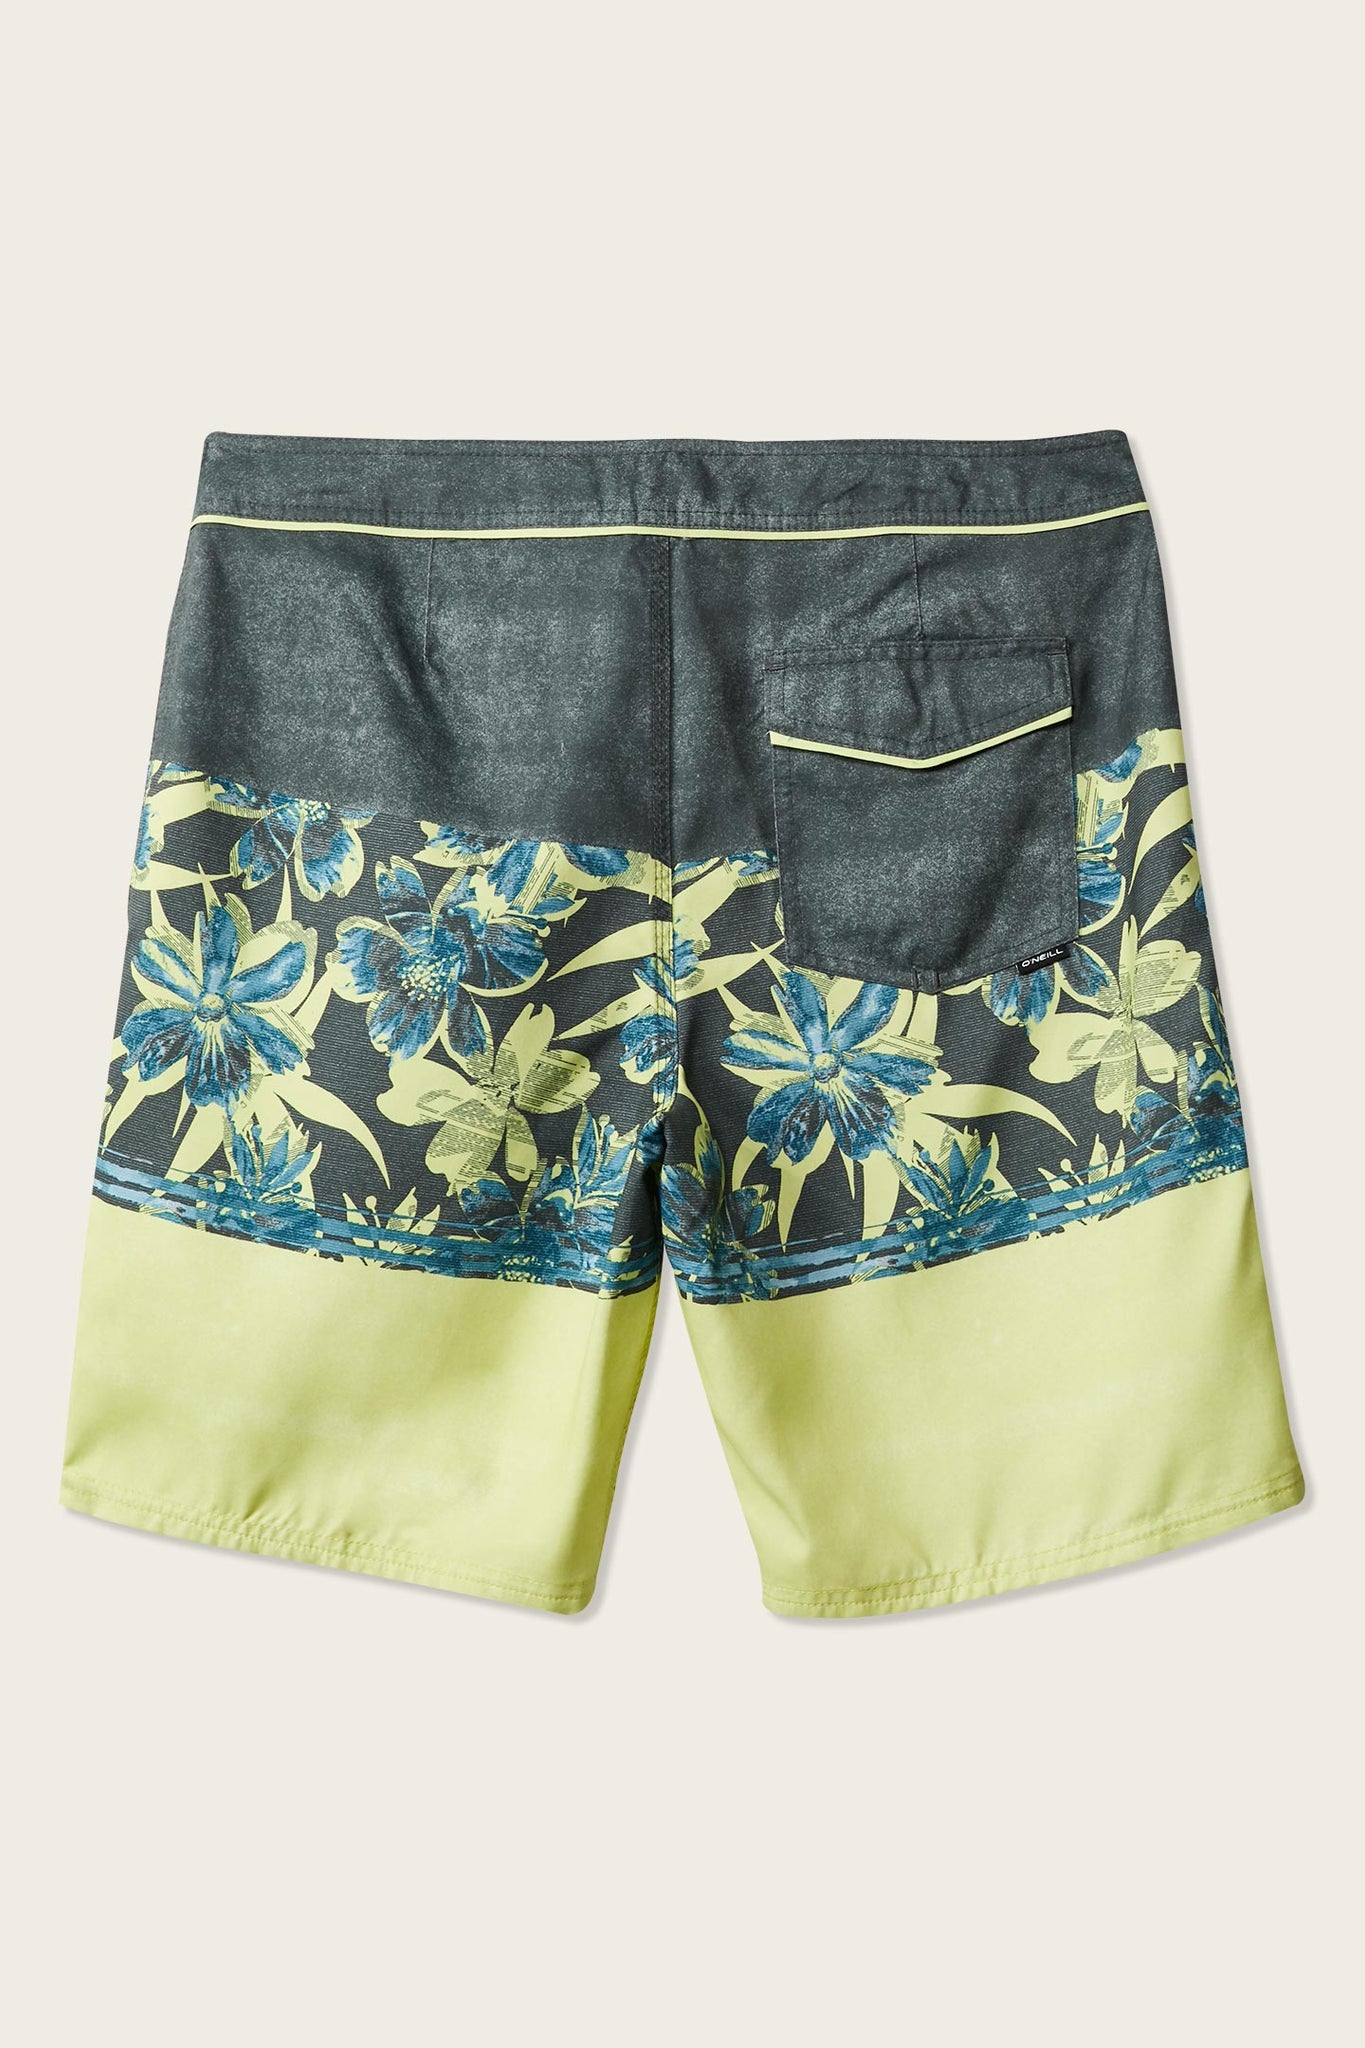 Floriculture Boardshorts | O'Neill Clothing USA